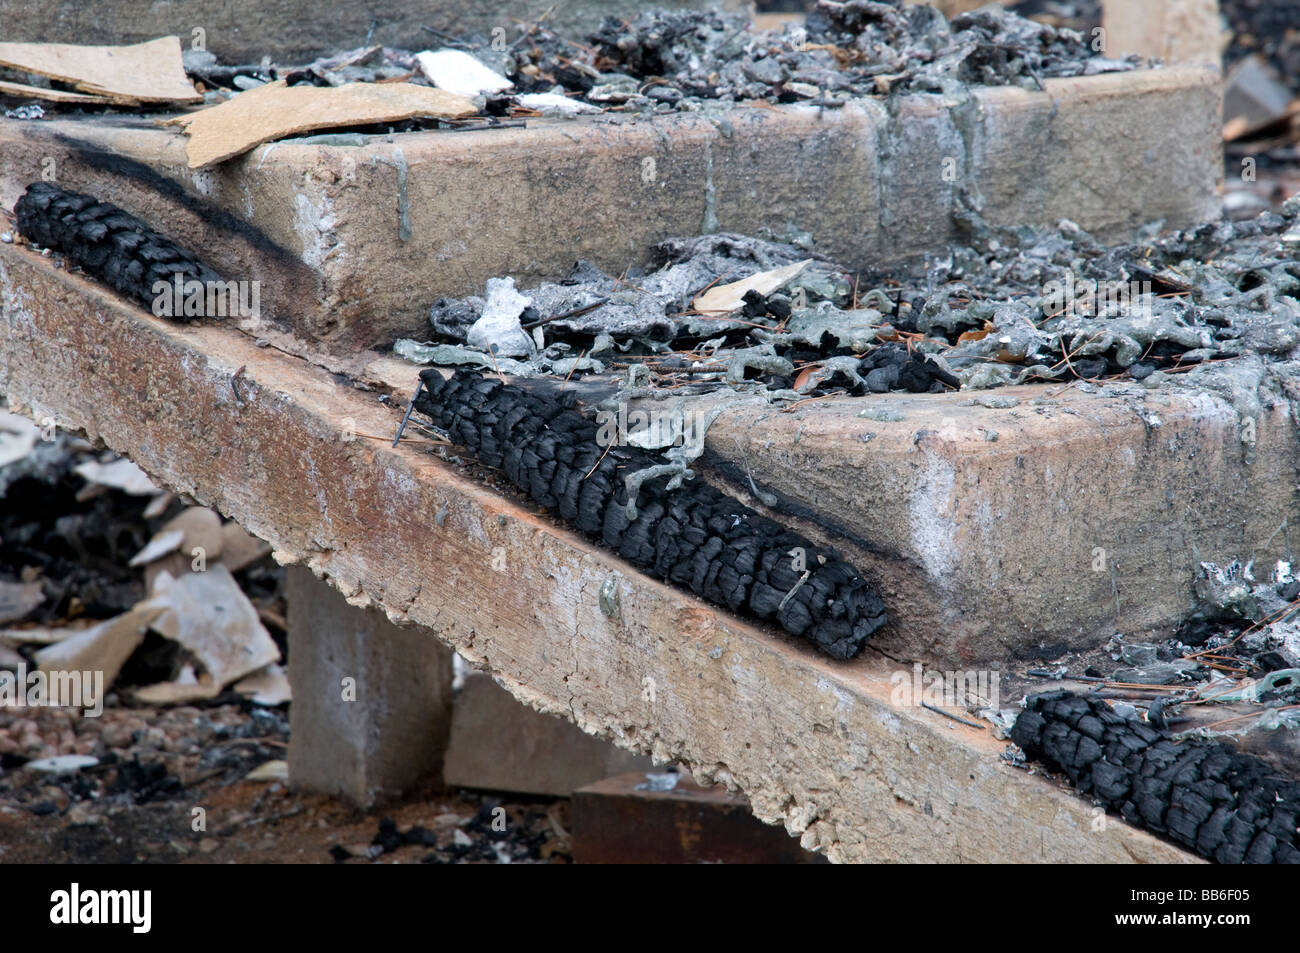 The remains of a home and devastation left after a bushfire - Stock Image